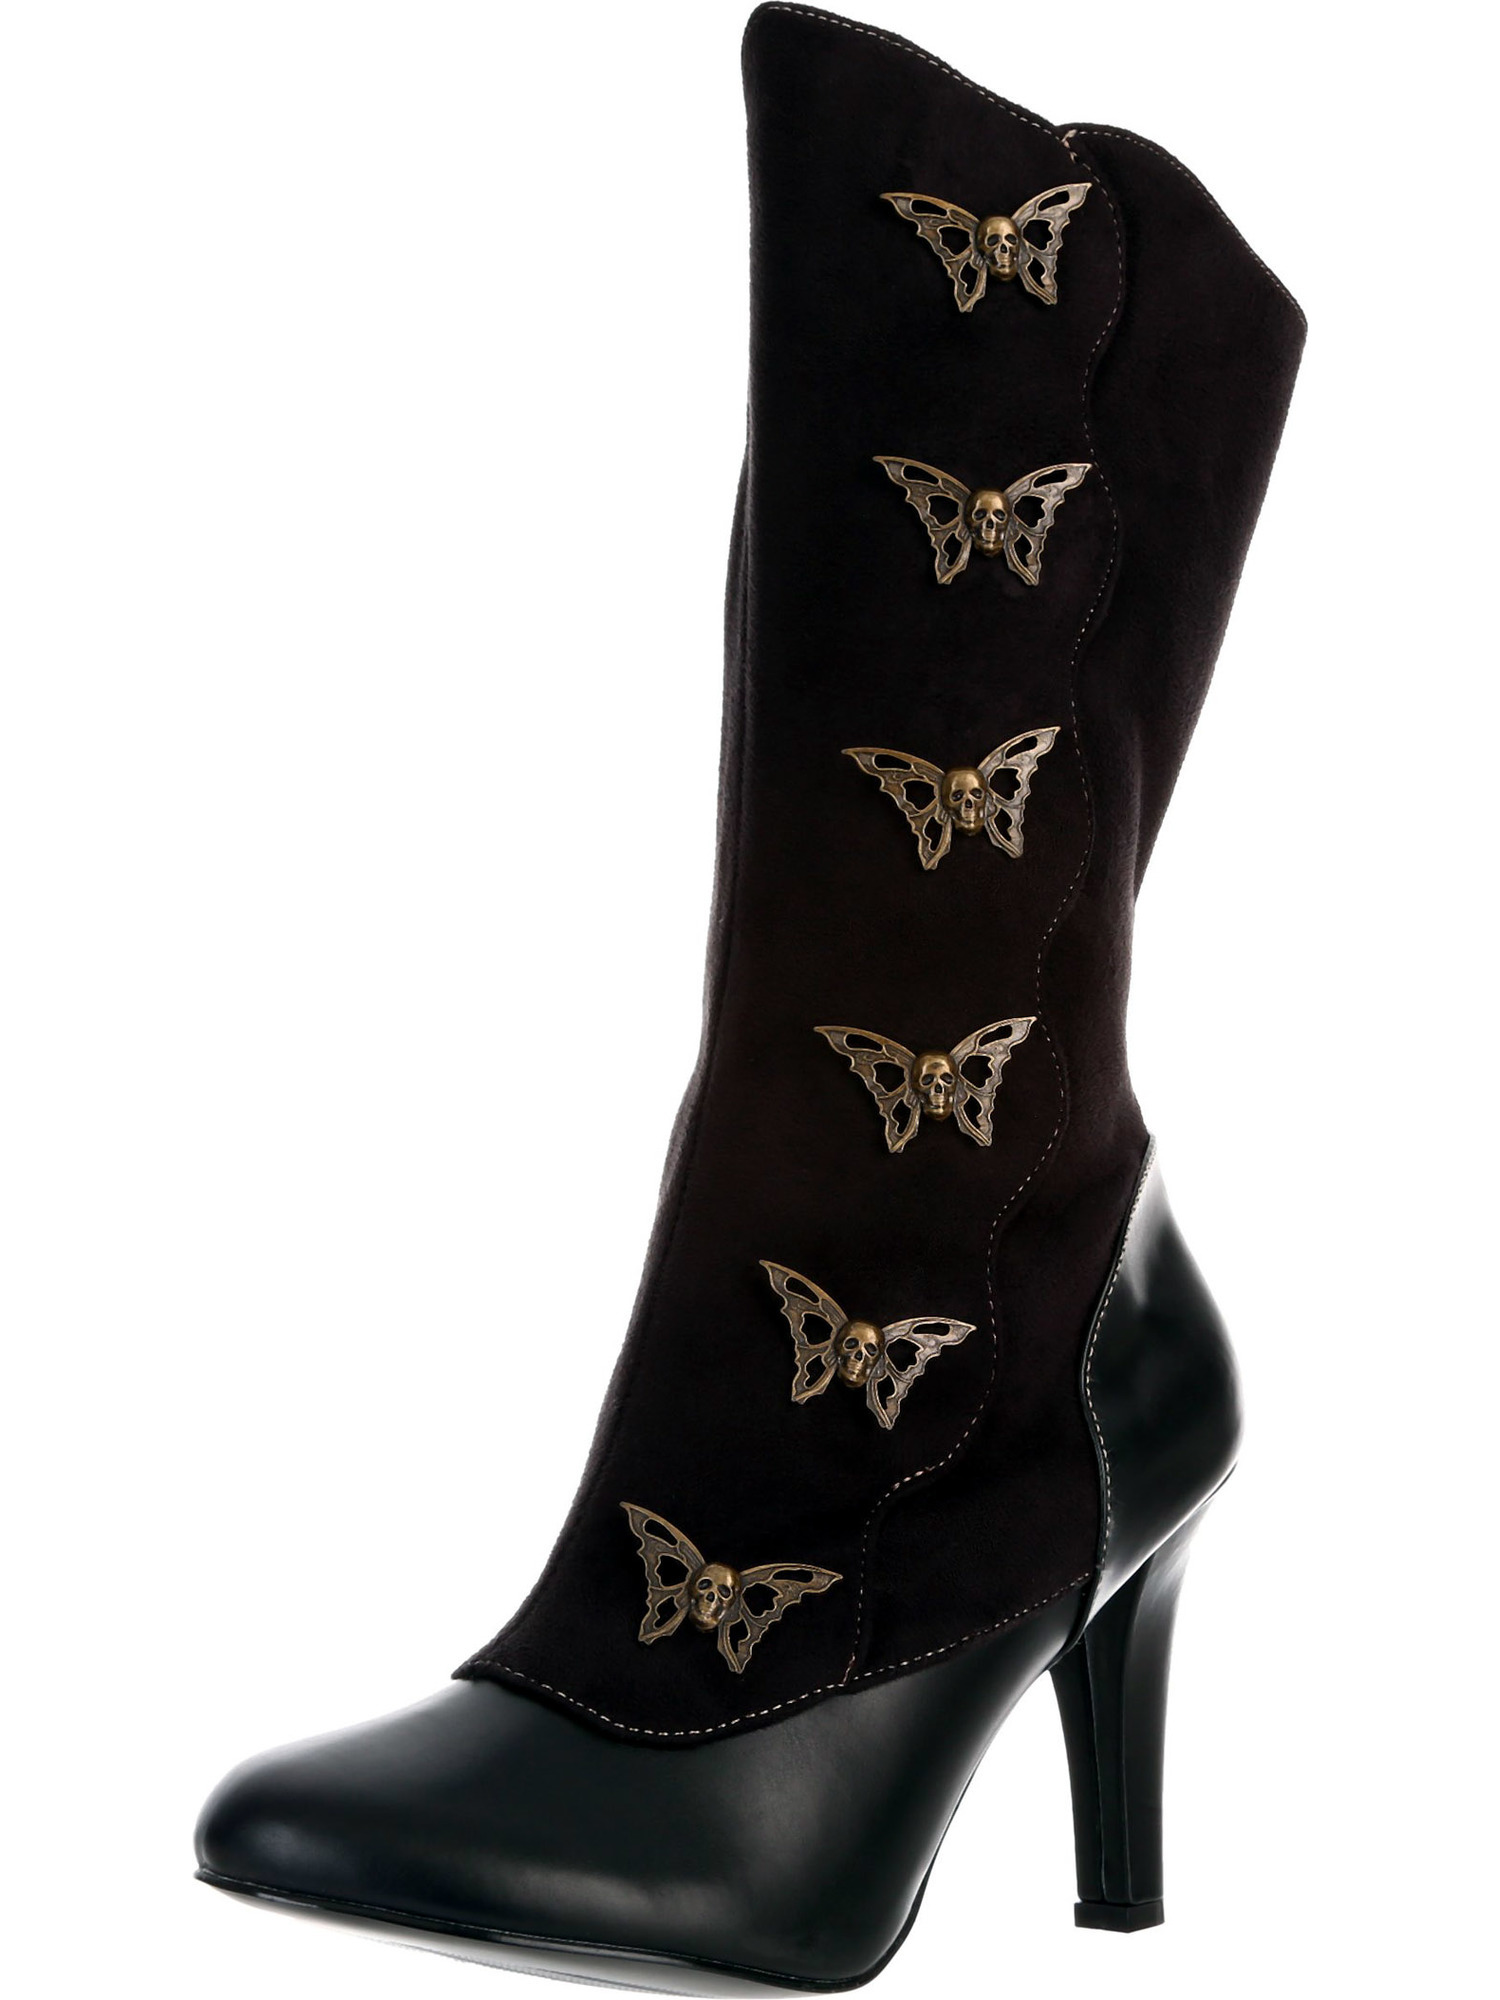 4 Inch Womens Sexy Boots Calf Boots Butterfly Buttons Steampunk